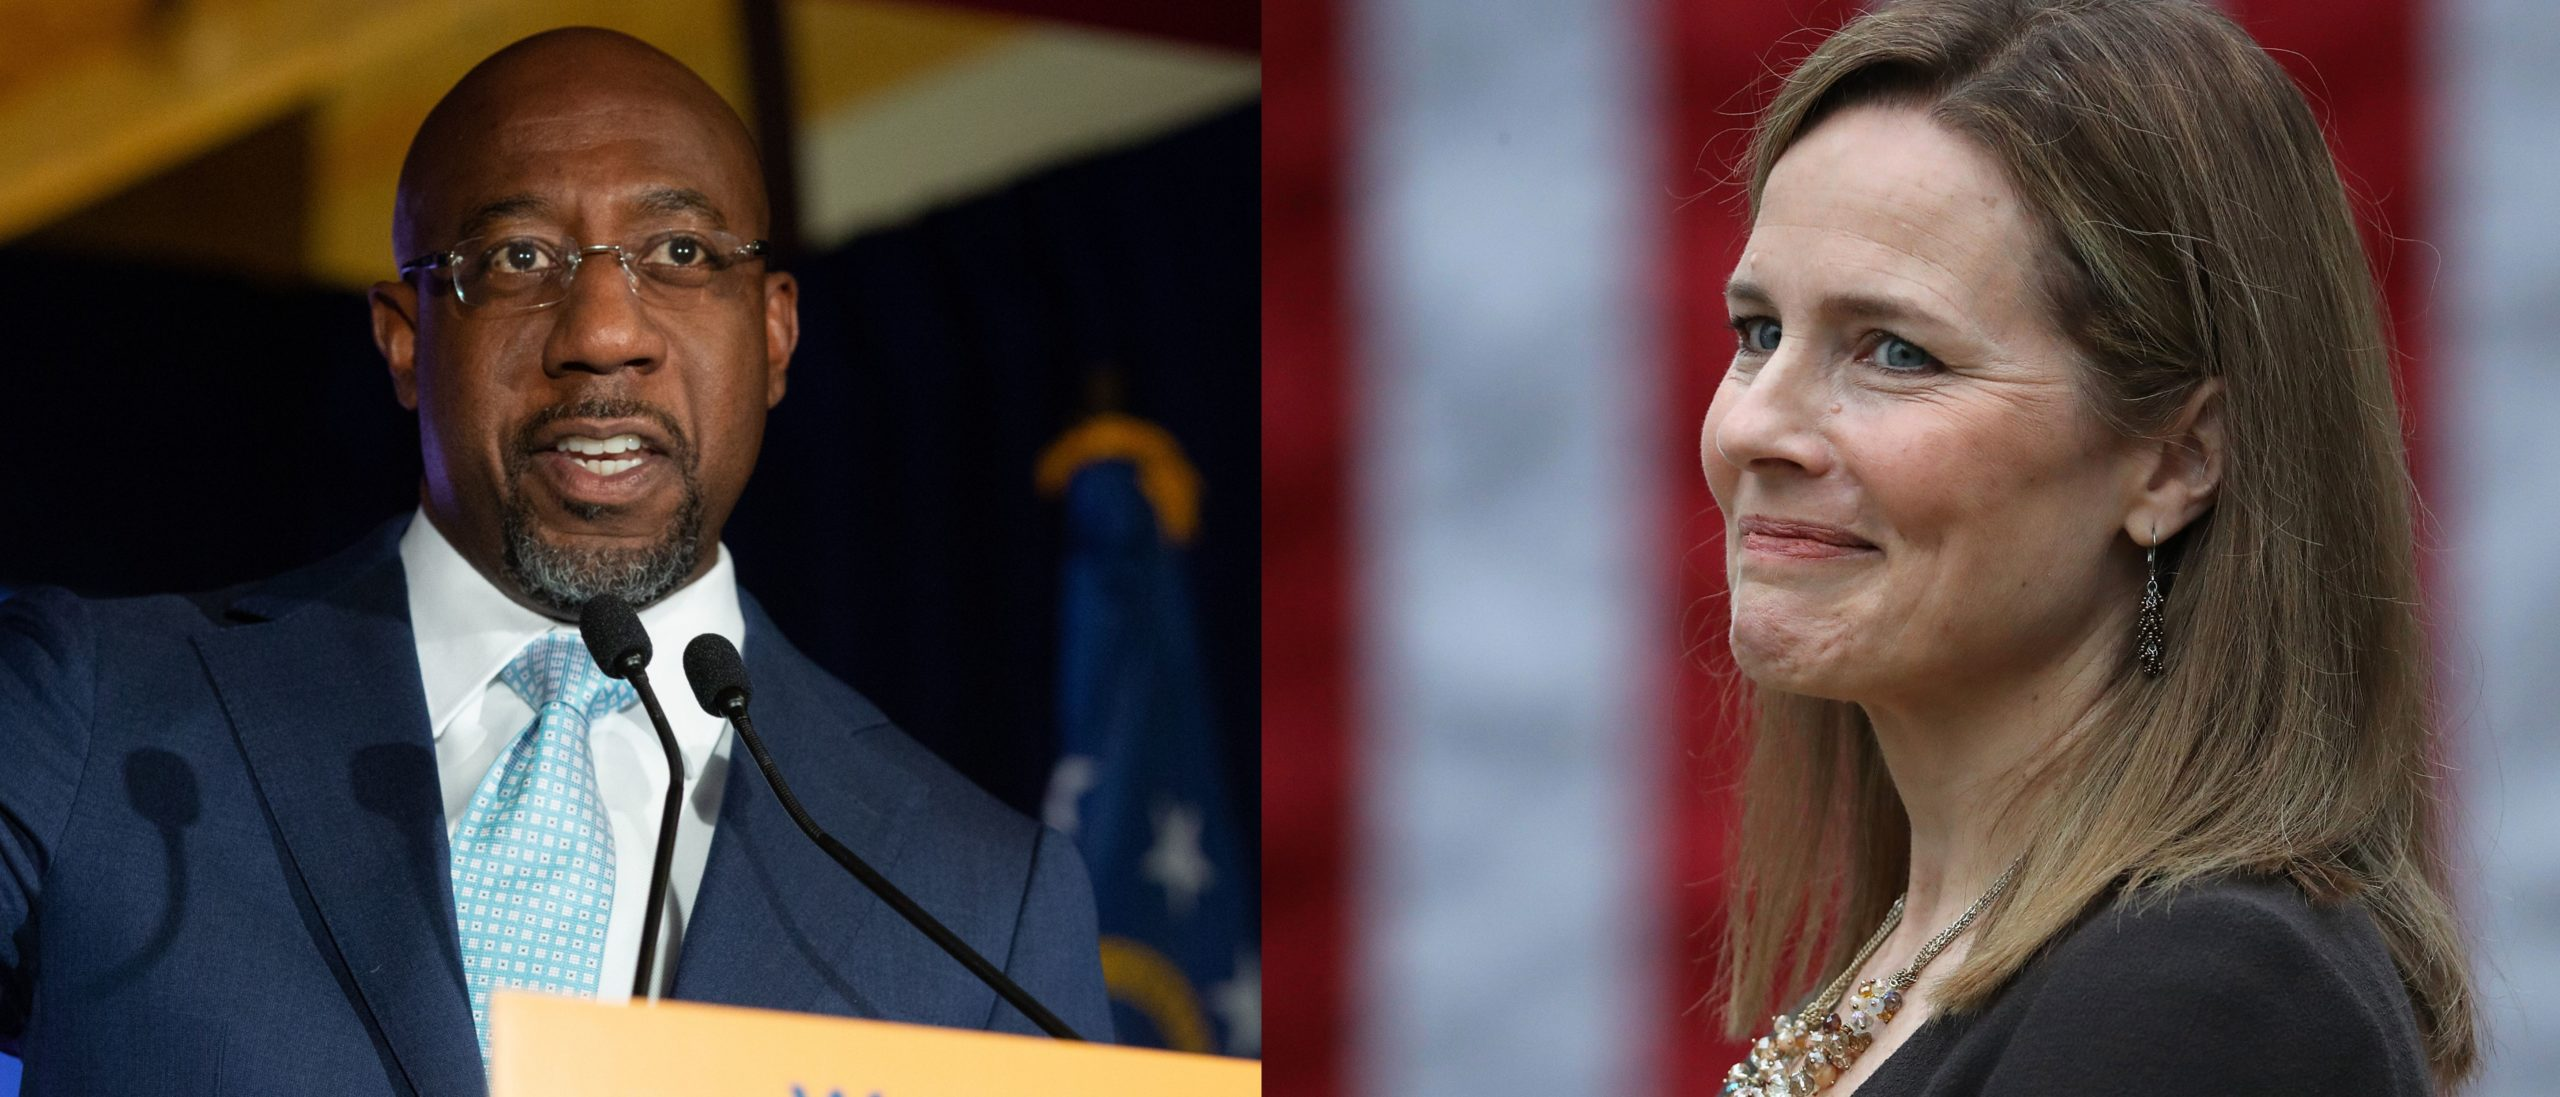 MSNBC Contributor Suggests GOP Attacks On Warnock's Religion Are Hypocritical, Cites Outrage Over Anti-Catholic Attacks On Amy Coney Barrett